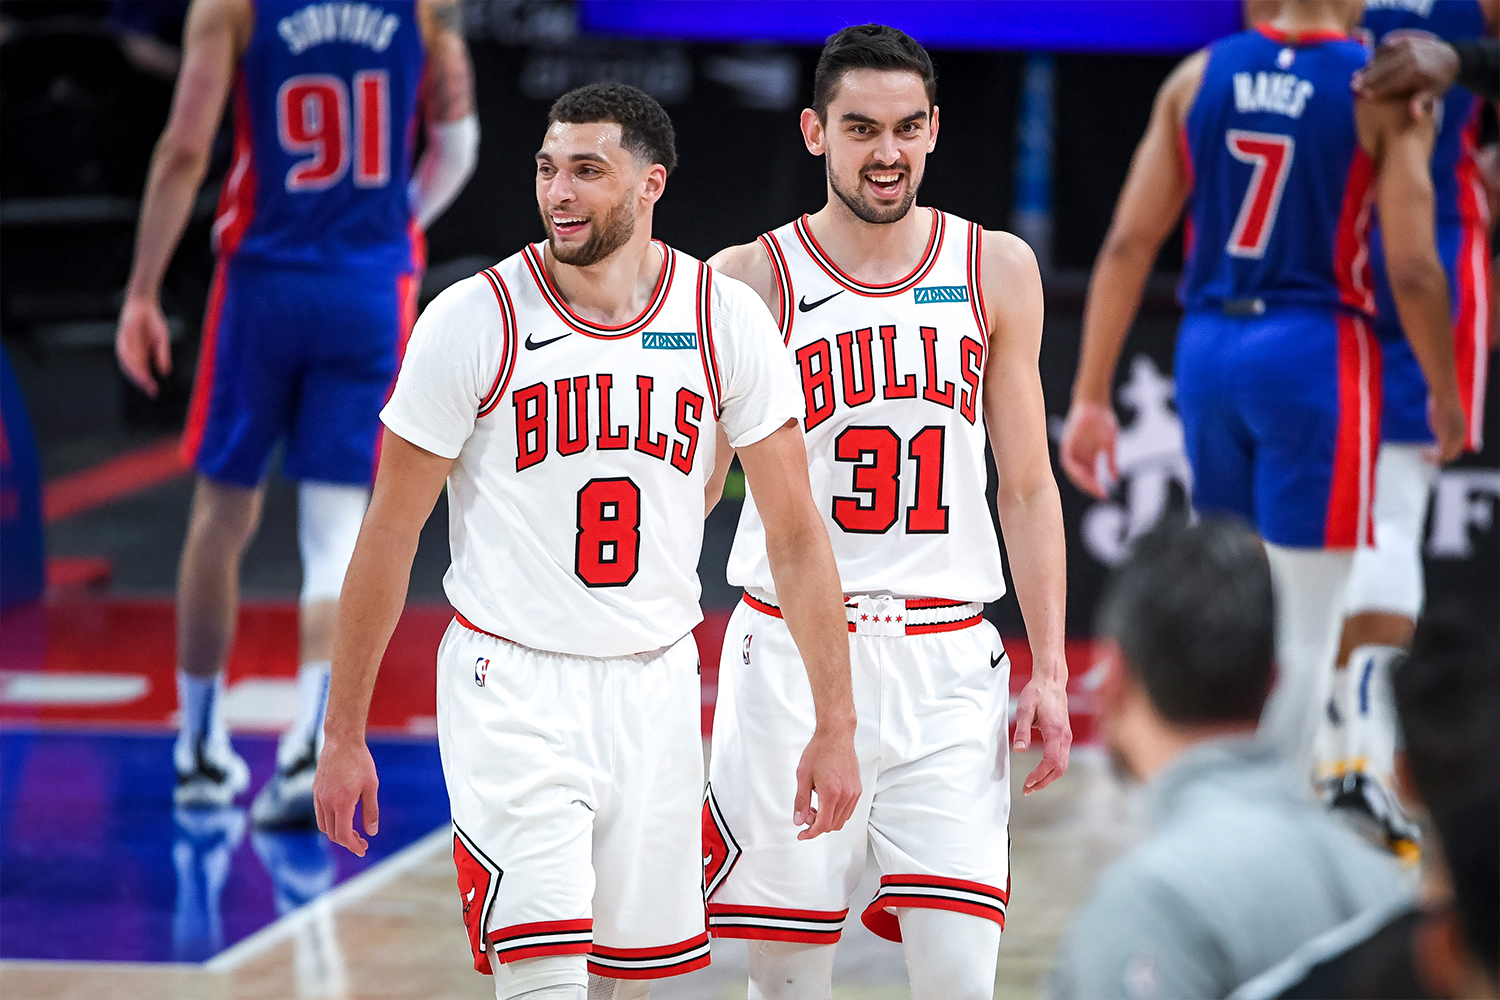 Zach LaVine #8 and Tomas Satoransky #31 of the Chicago Bulls smile during the fourth quarter of the NBA game against the Detroit Pistons